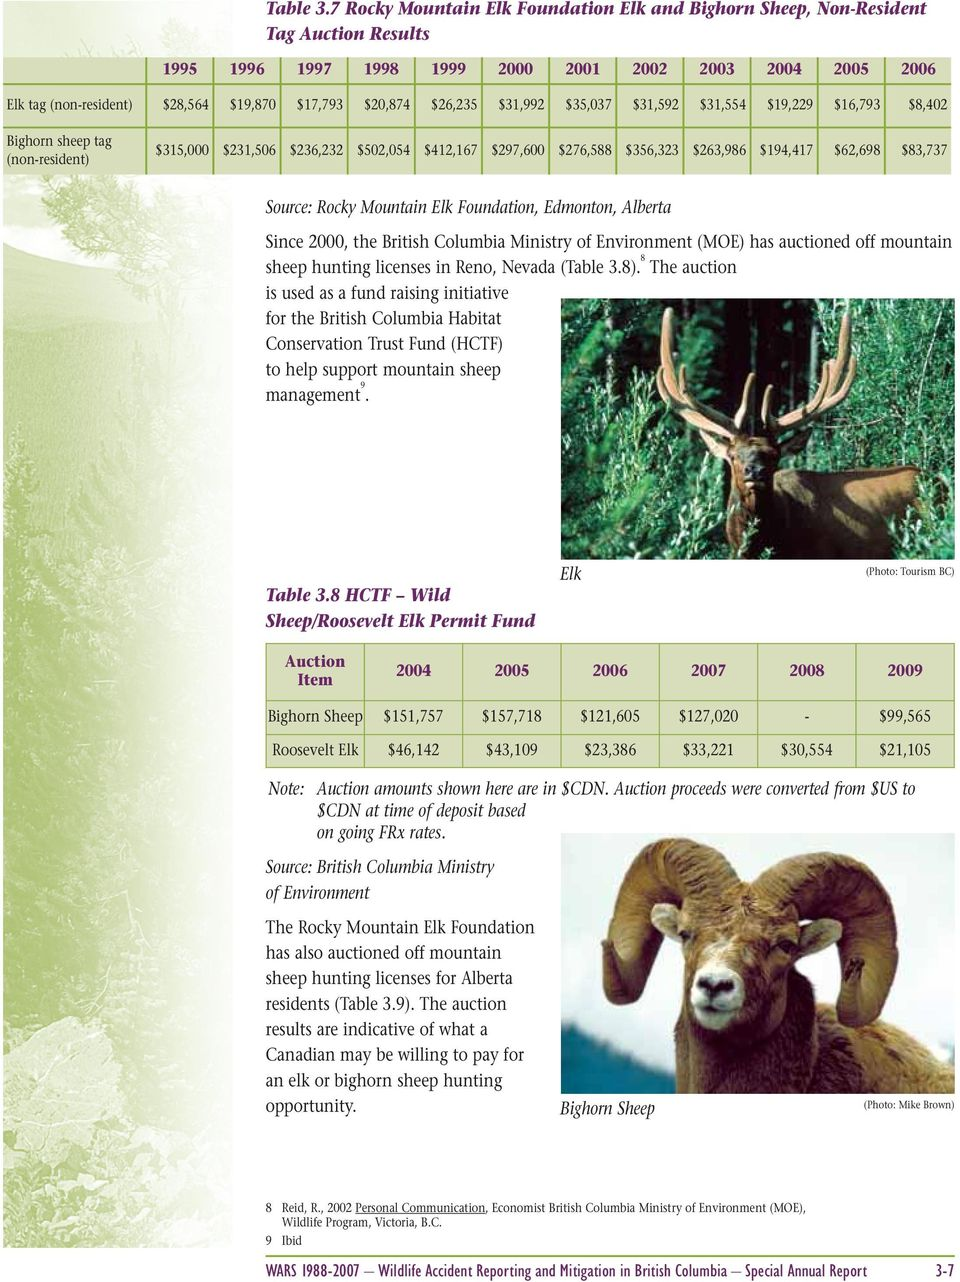 $20,874 $26,235 $31,992 $35,037 $31,592 $31,554 $19,229 $16,793 $8,402 Bighorn sheep tag (non-resident) $315,000 $231,506 $236,232 $502,054 $412,167 $297,600 $276,588 $356,323 $263,986 $194,417